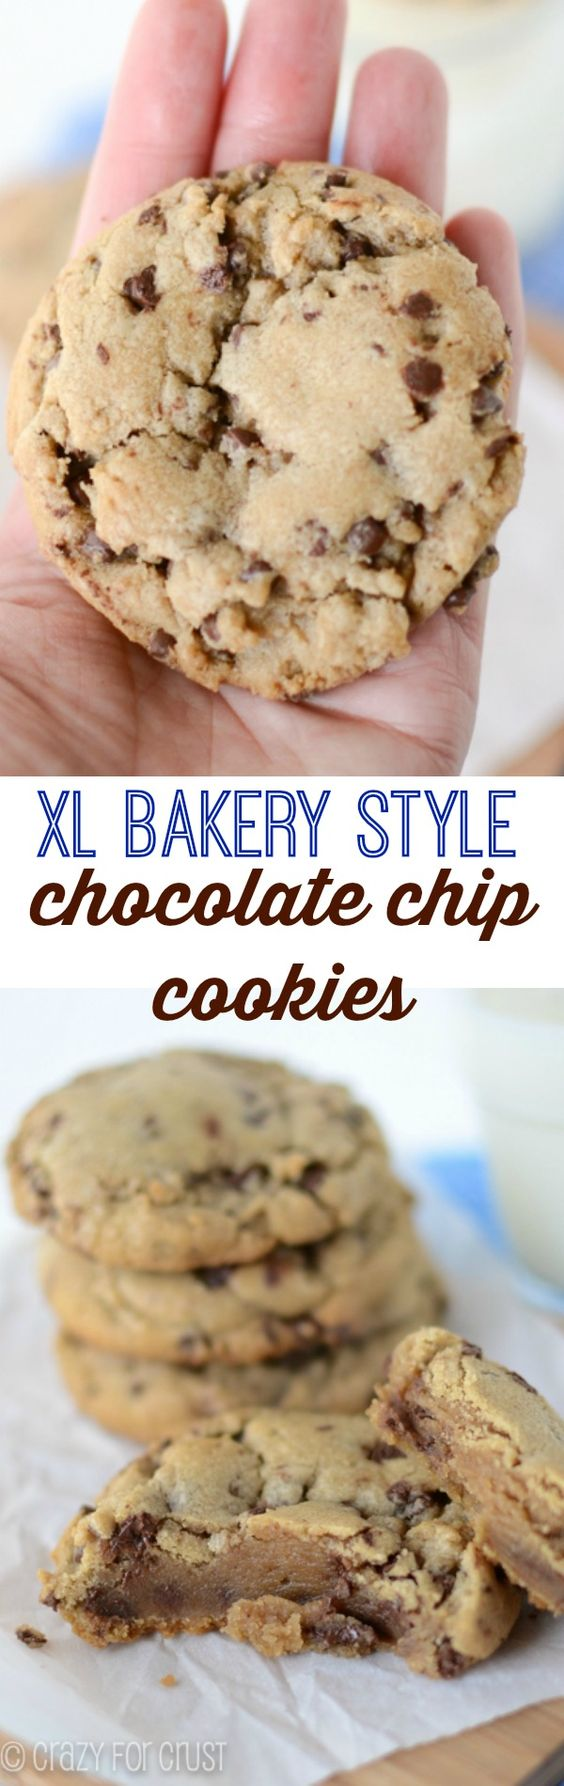 Bakery Style Chocolate Chip Cookies | Recipe | Chocolate Chip Cookies ...